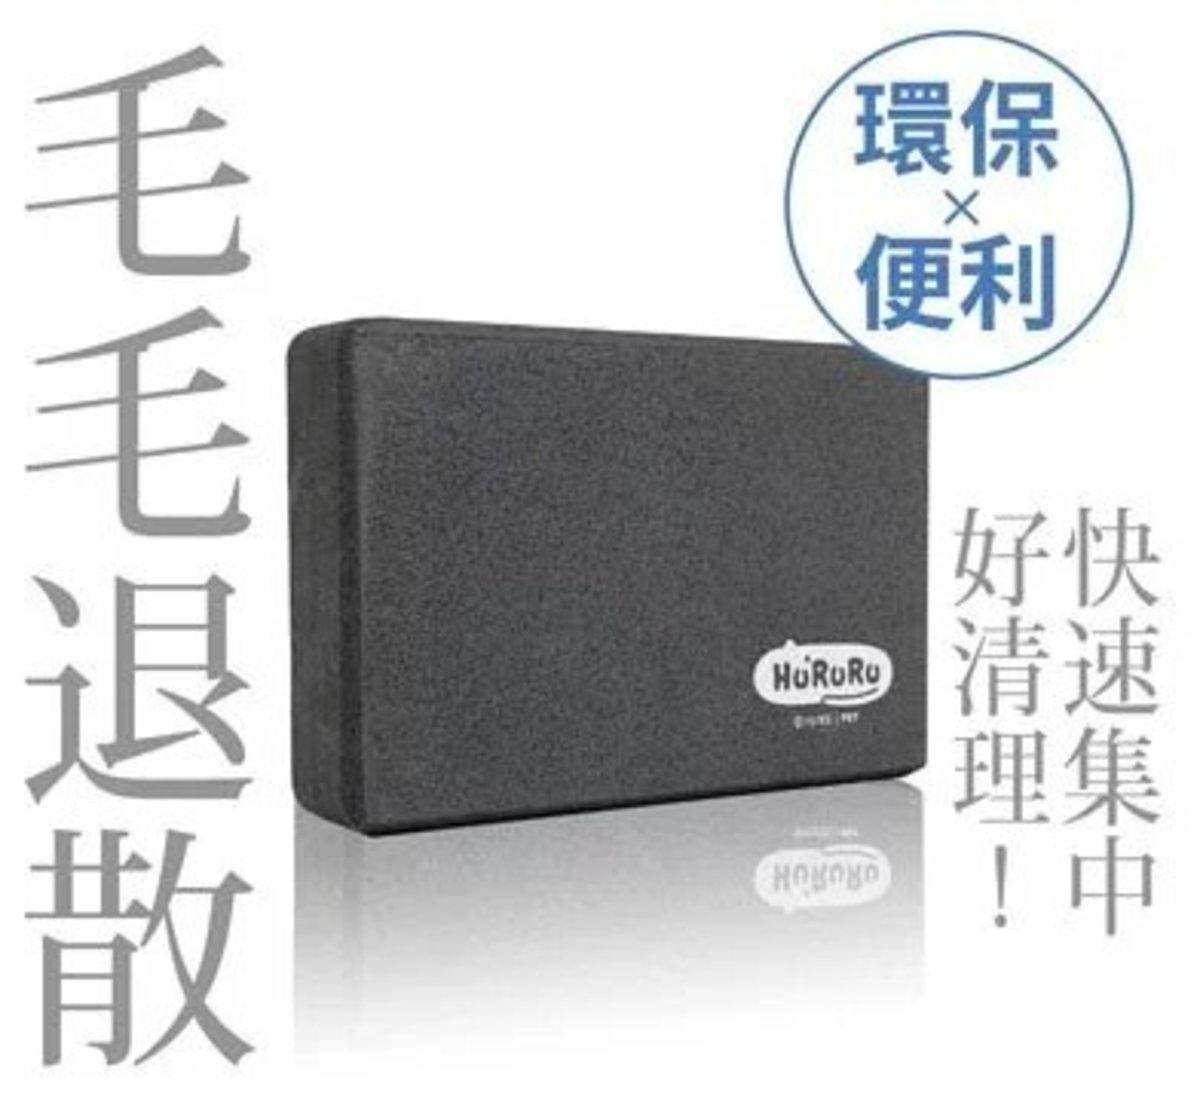 Pet Hair Removal Brick / Brush - Hururu Pet Series